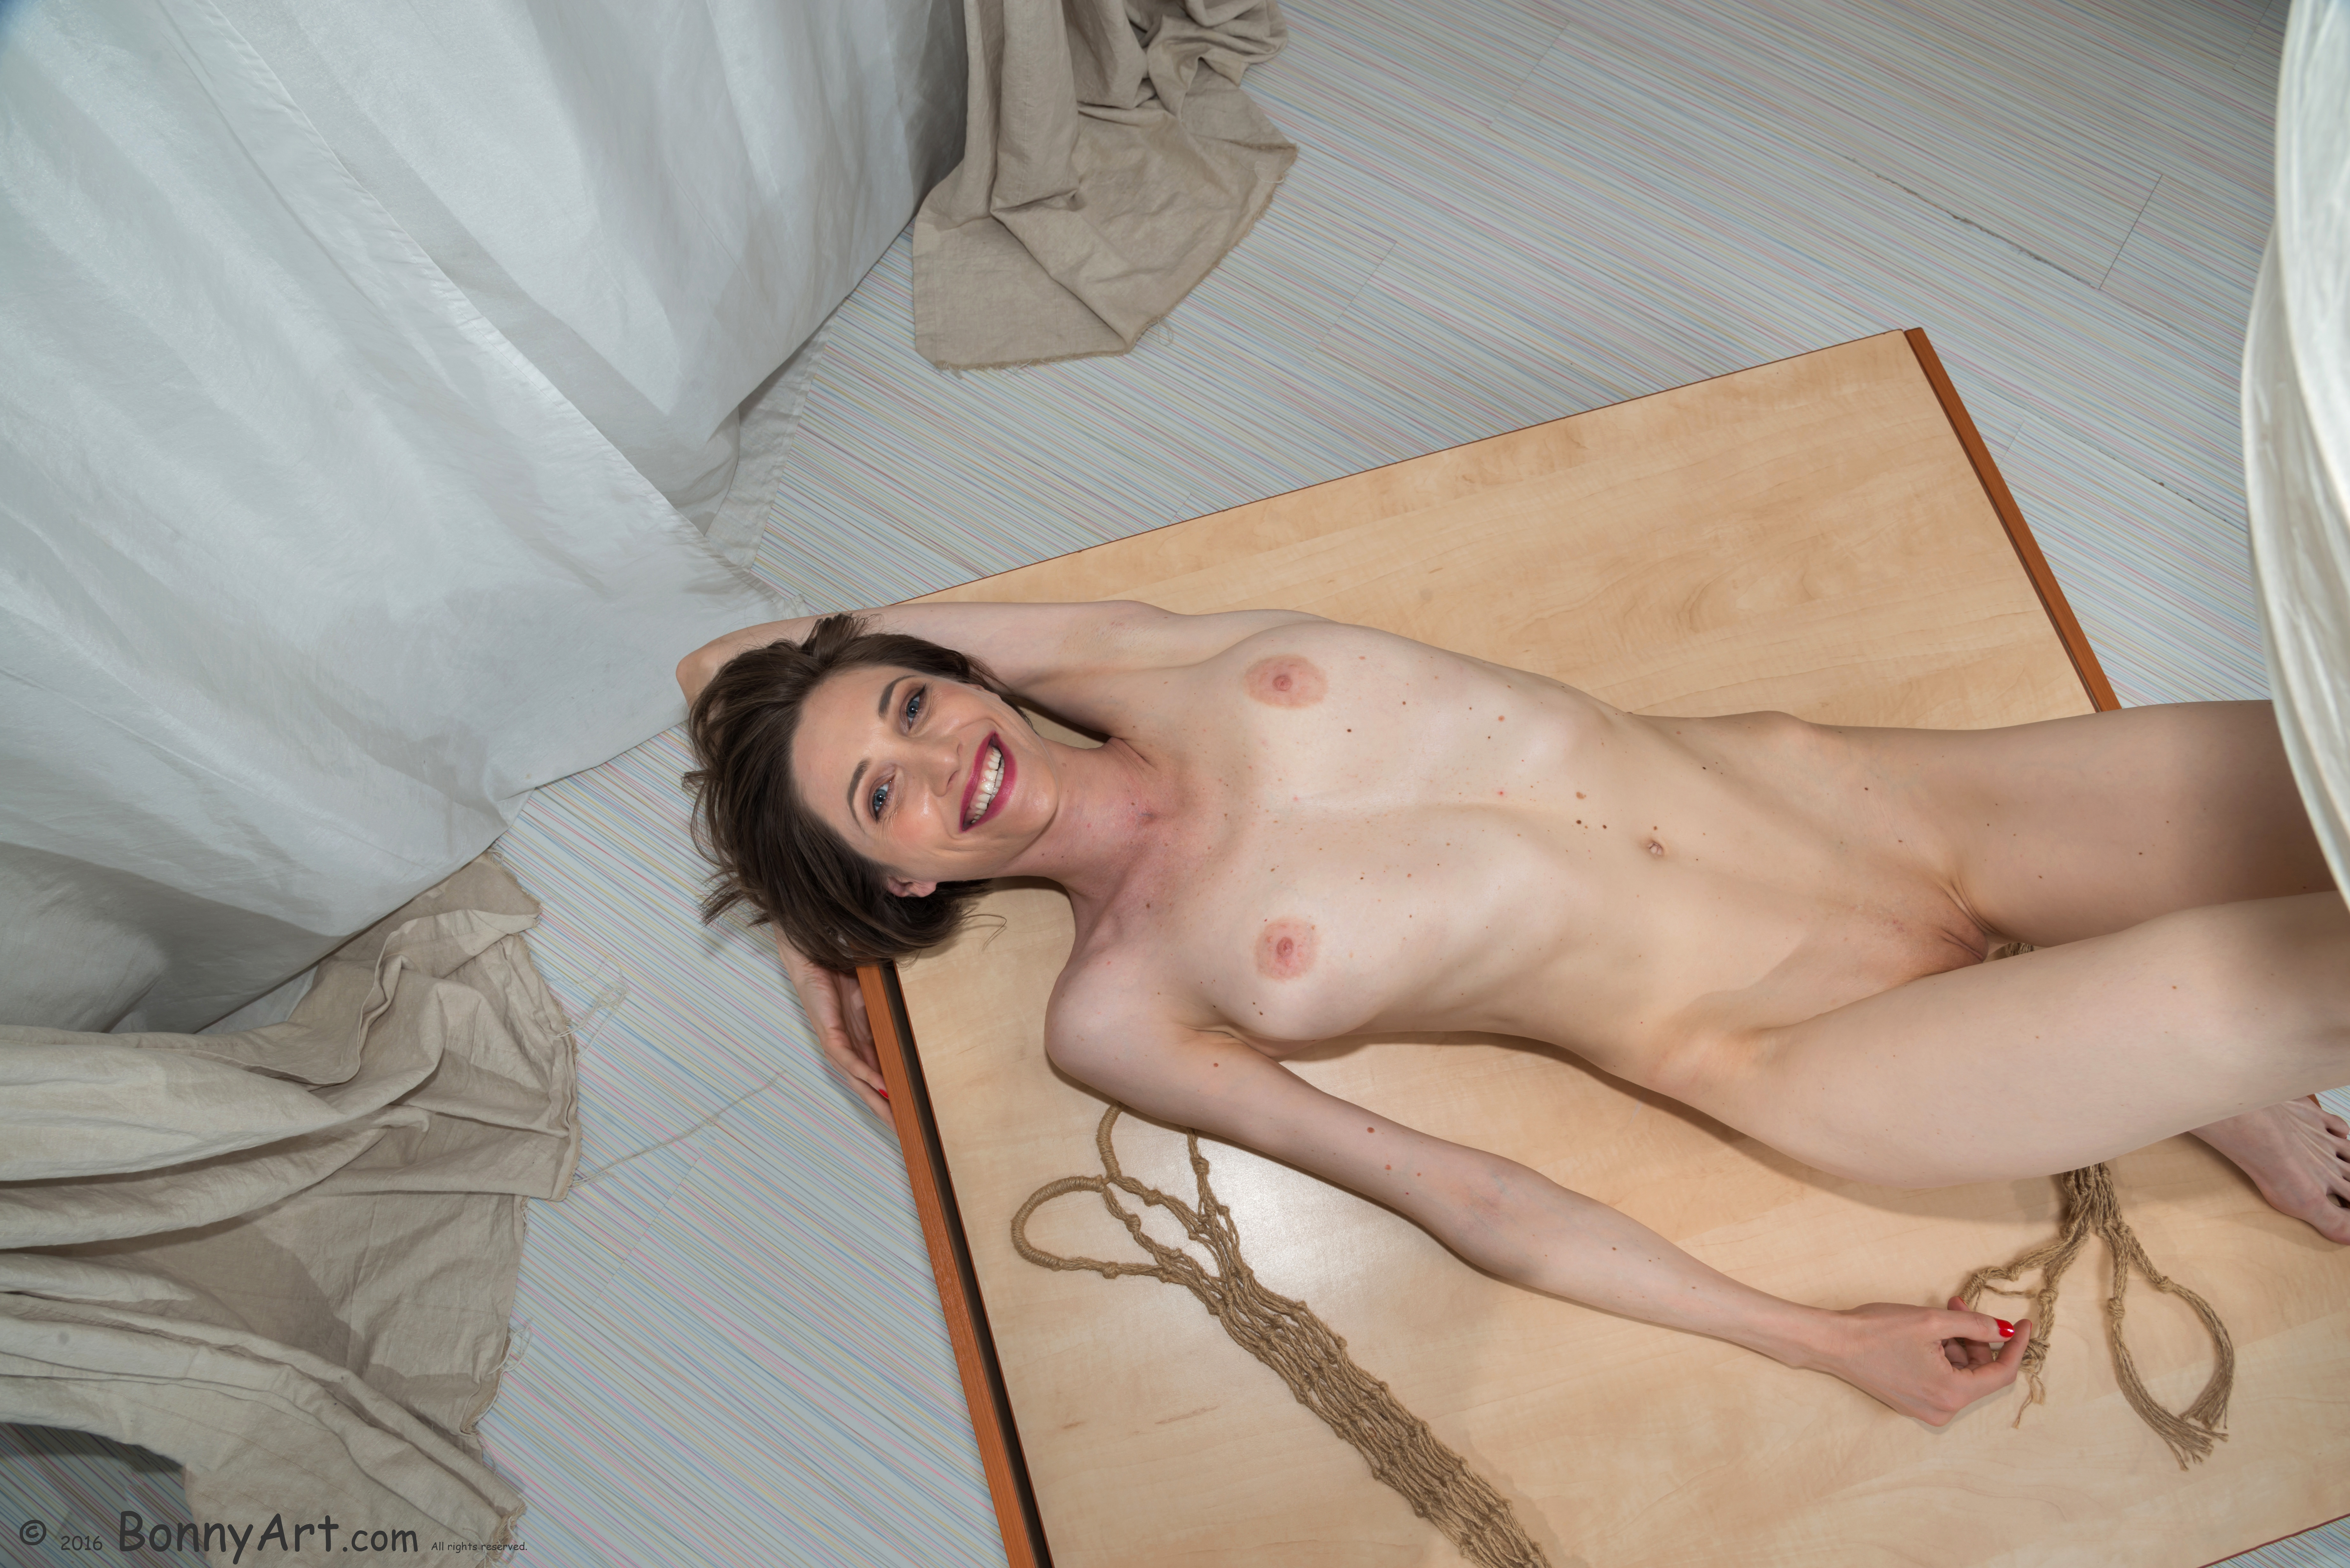 Happy Nude Skinny Woman on the Table